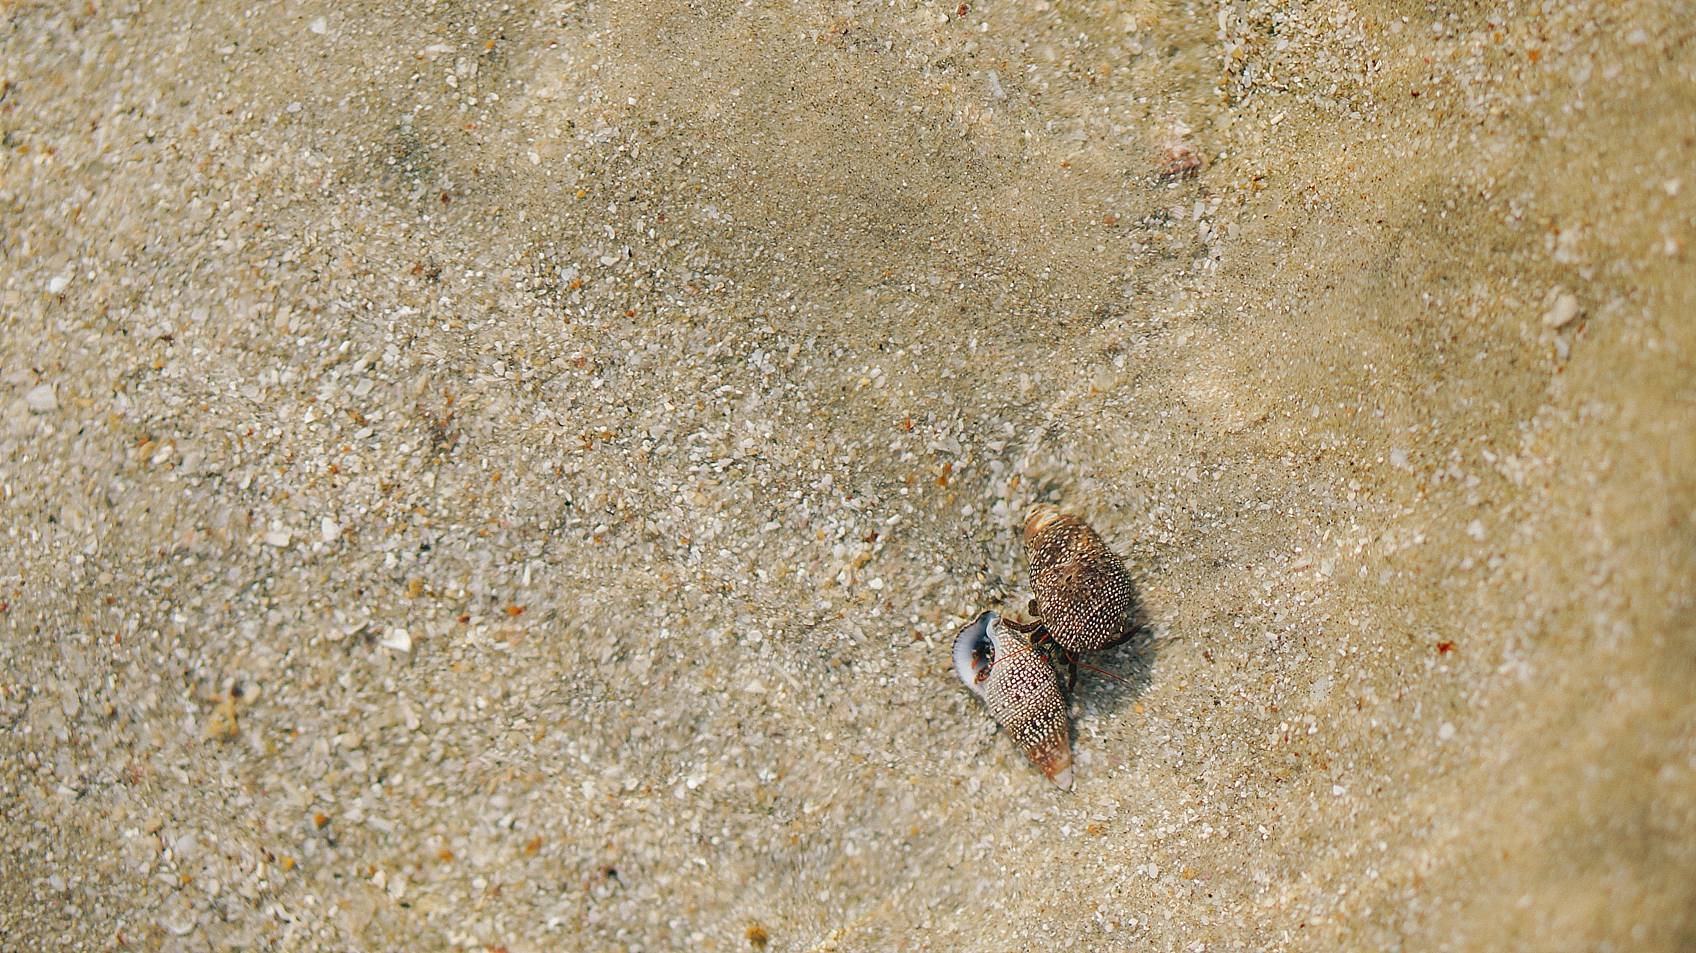 hermit crabs in Mexico sand